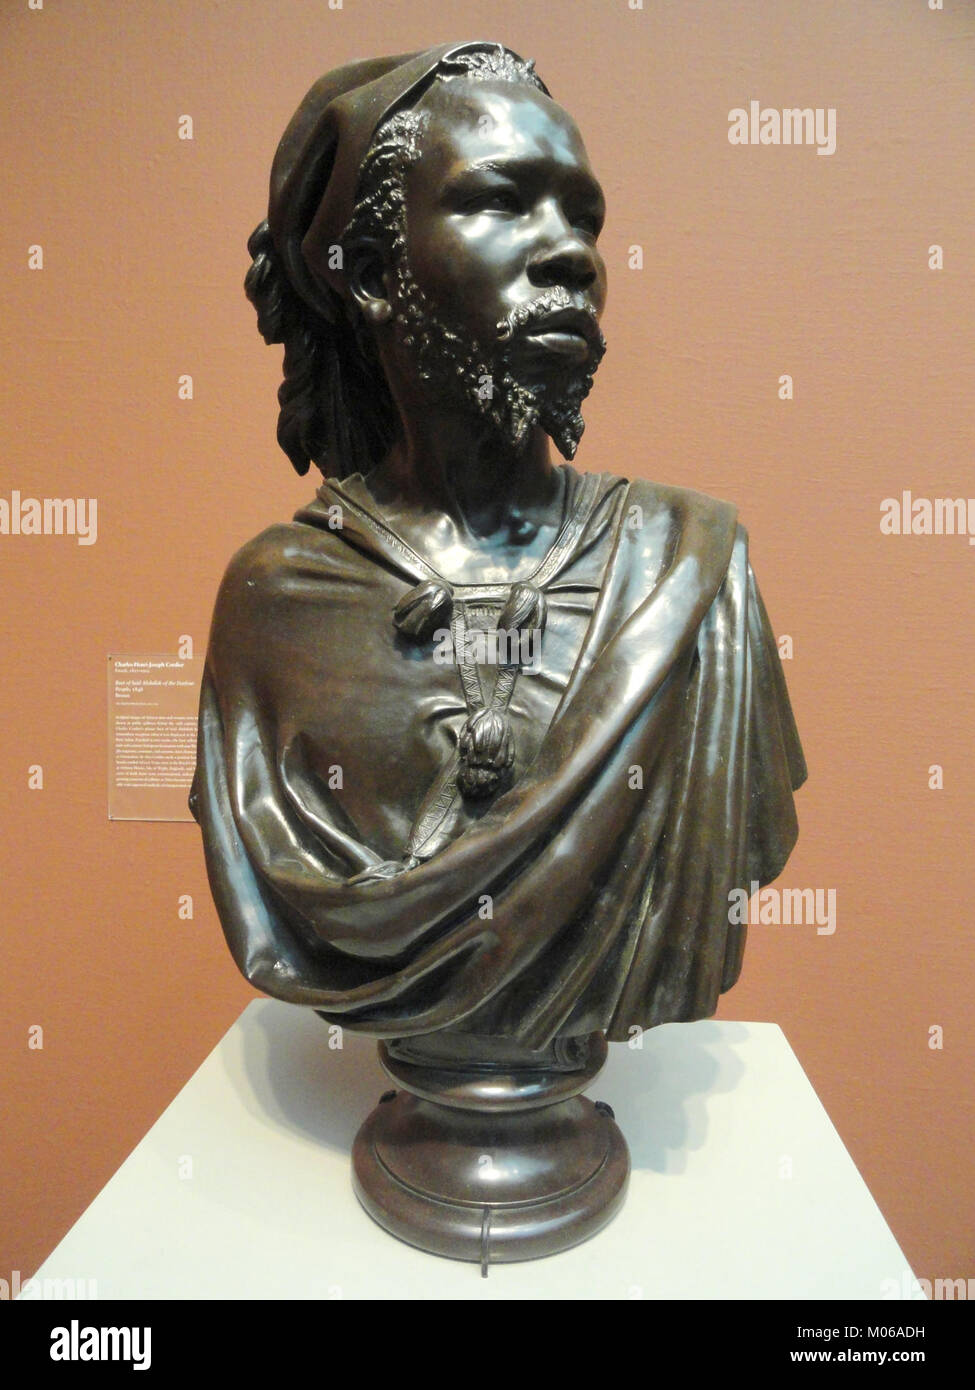 Bust of Said Abdullah of the Darfour People, 1848, by Charles-Henri-Joseph Cordier, bronze - Art Institute of Chicago Stock Photo